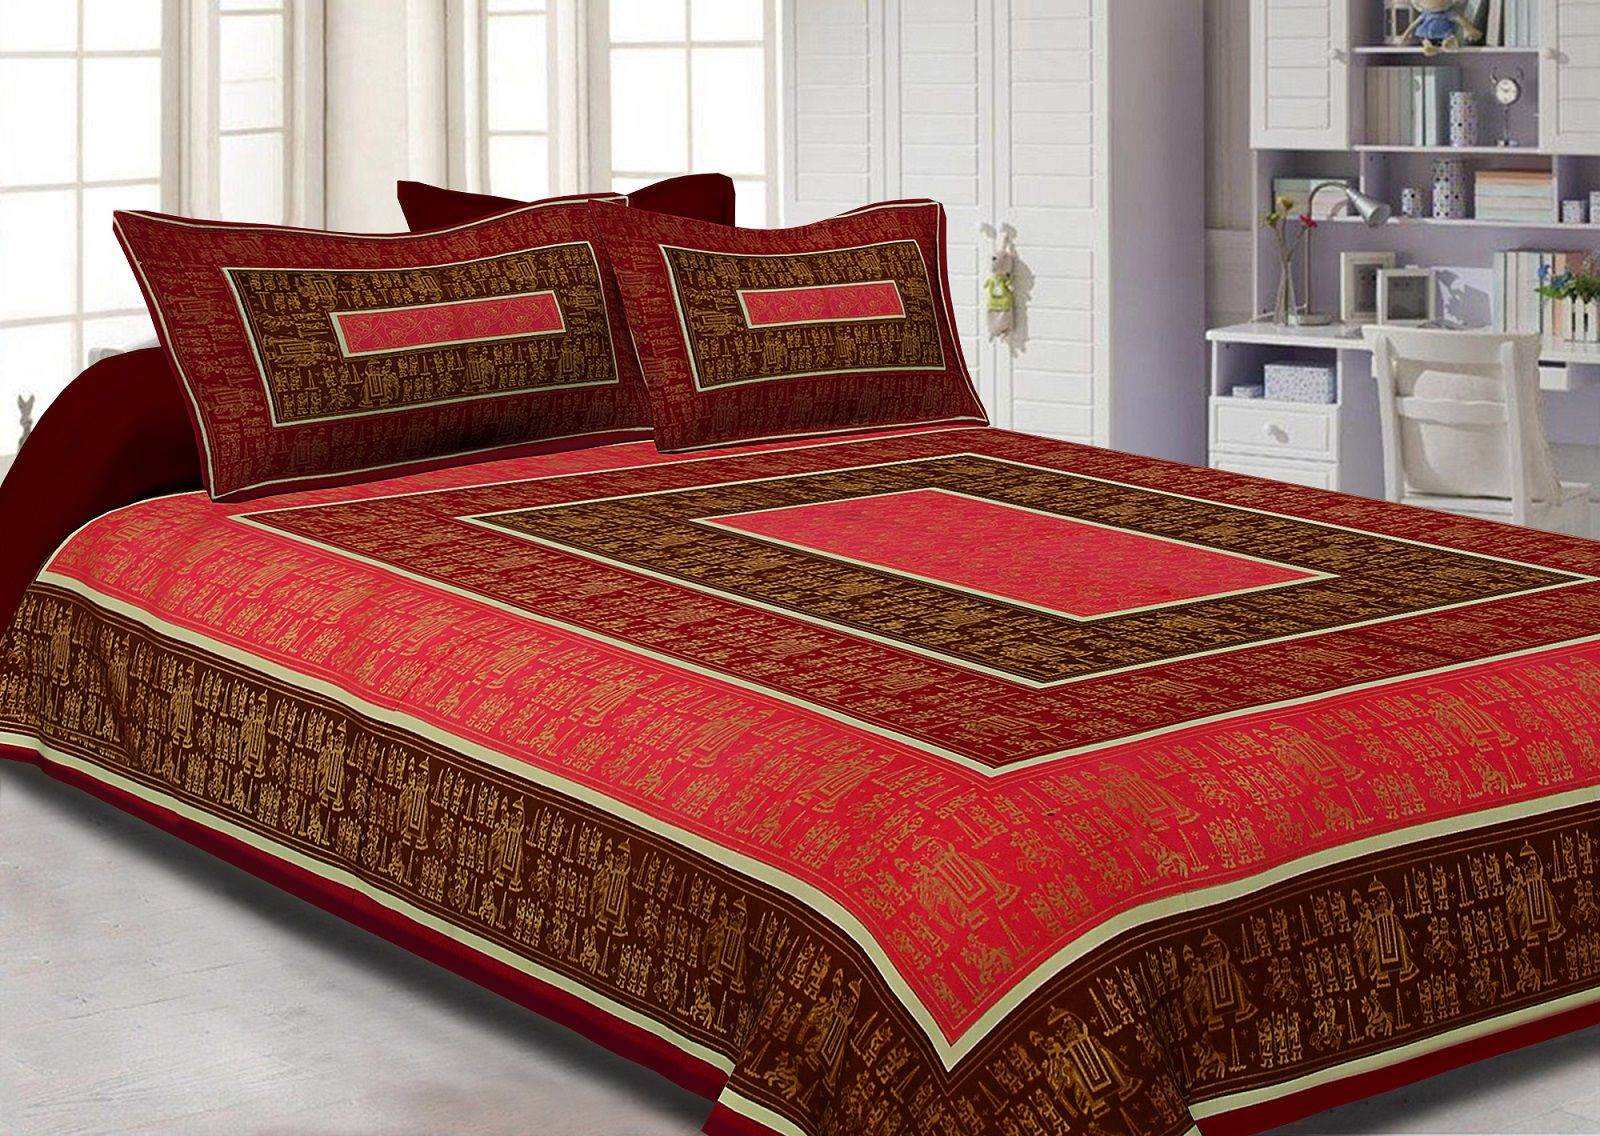 Maroon Border GoldeN Barat In Rectangle Pattern Super Fine Cotton Double Bedsheet